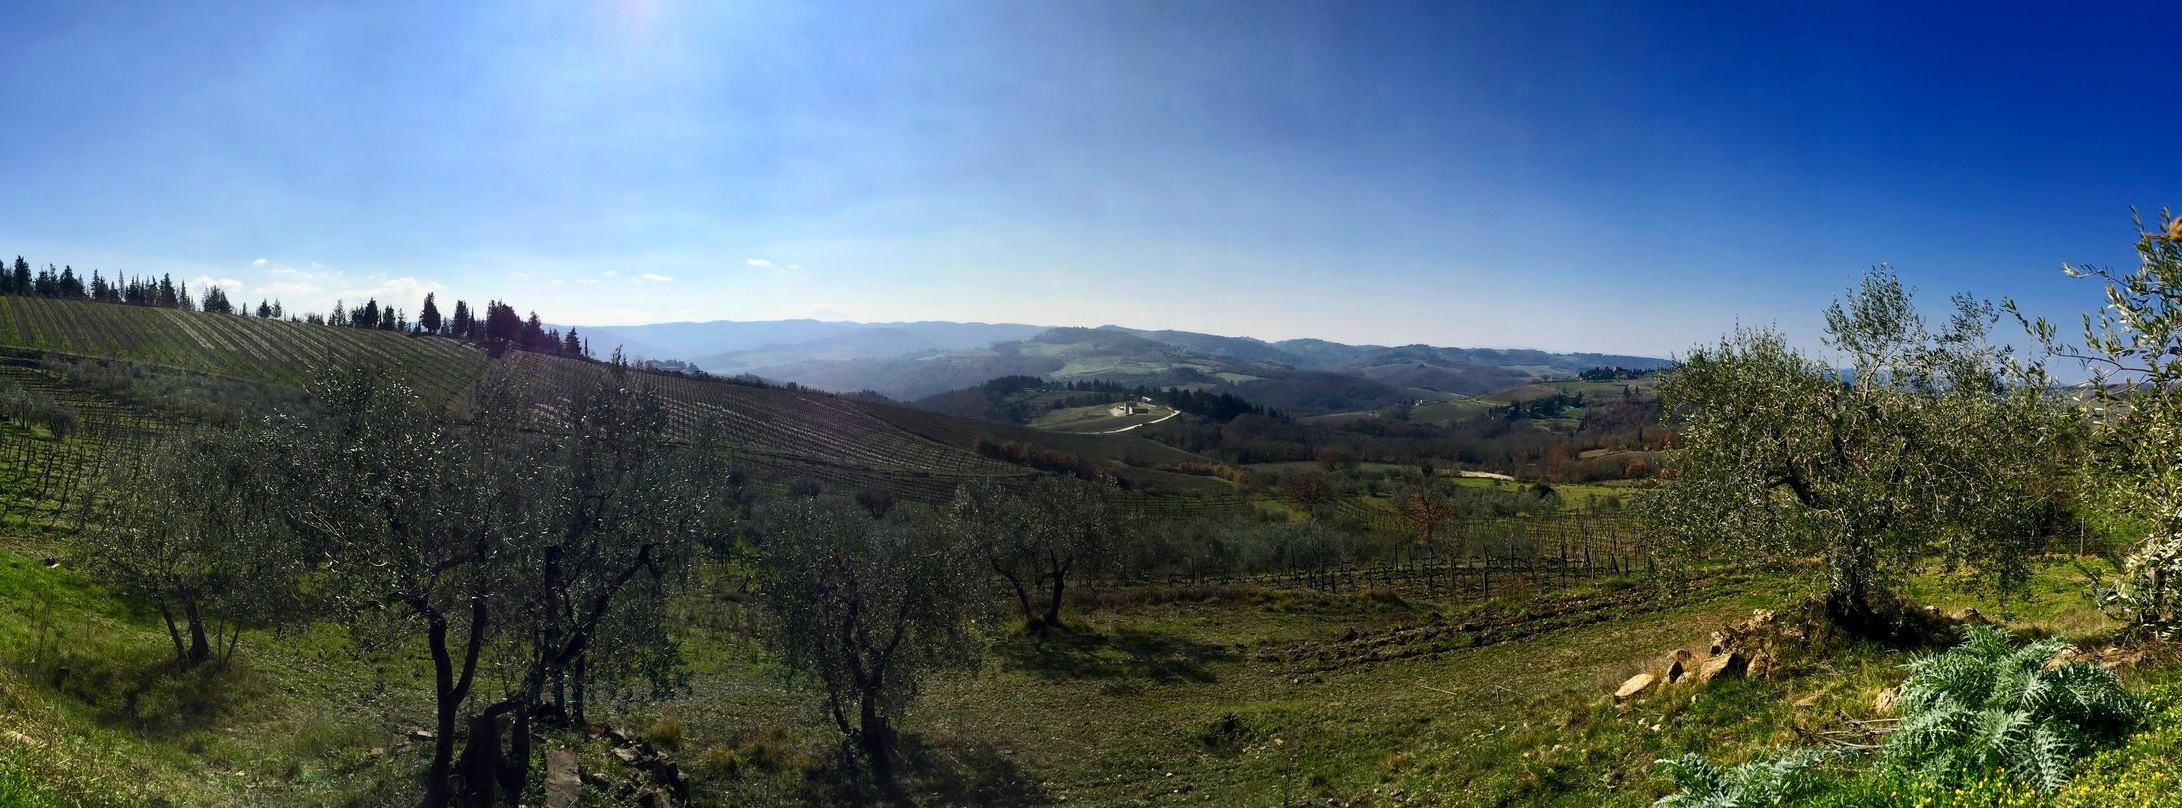 Conca d'Oro one of the most impressive countryside landscapes in Italy - Chianti